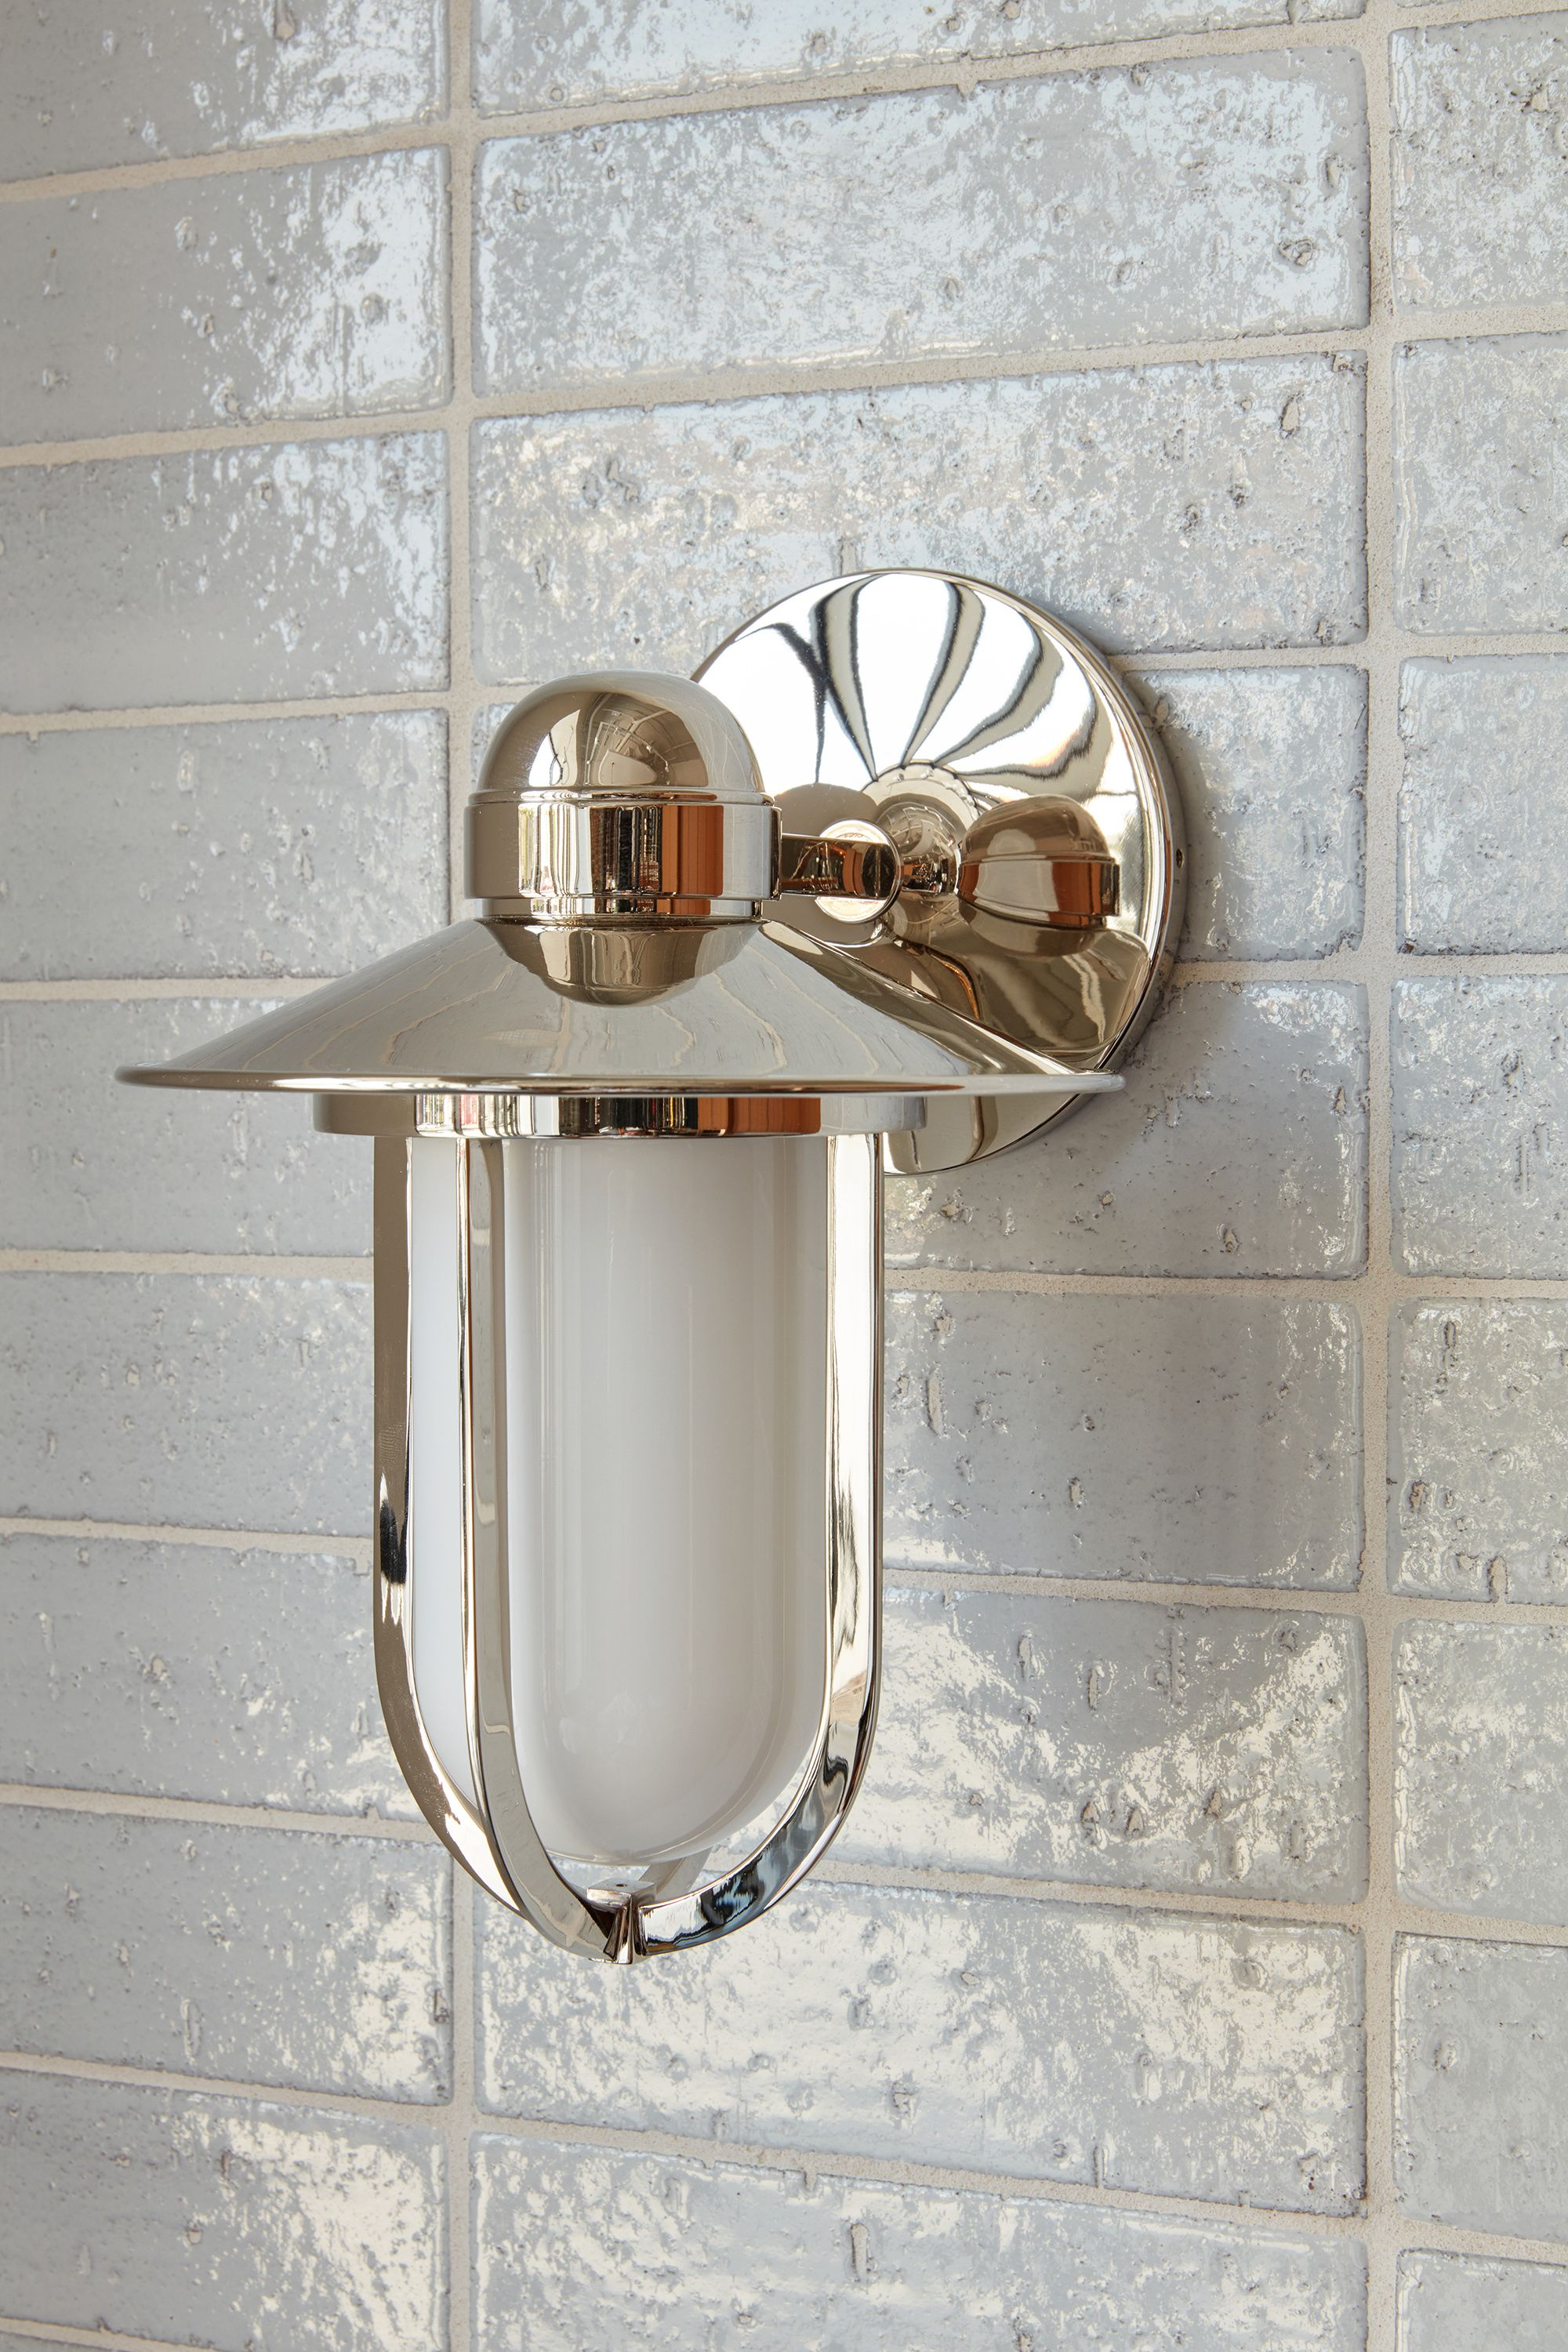 double gold outlet lowes affordable chrome brass with wall non candle two edison large where lights electric bulb proportions bathroom light scroll x vintage moon graydon sconces rejuvenation half sconce nelson modern for interior buy to decoration corded sale polished